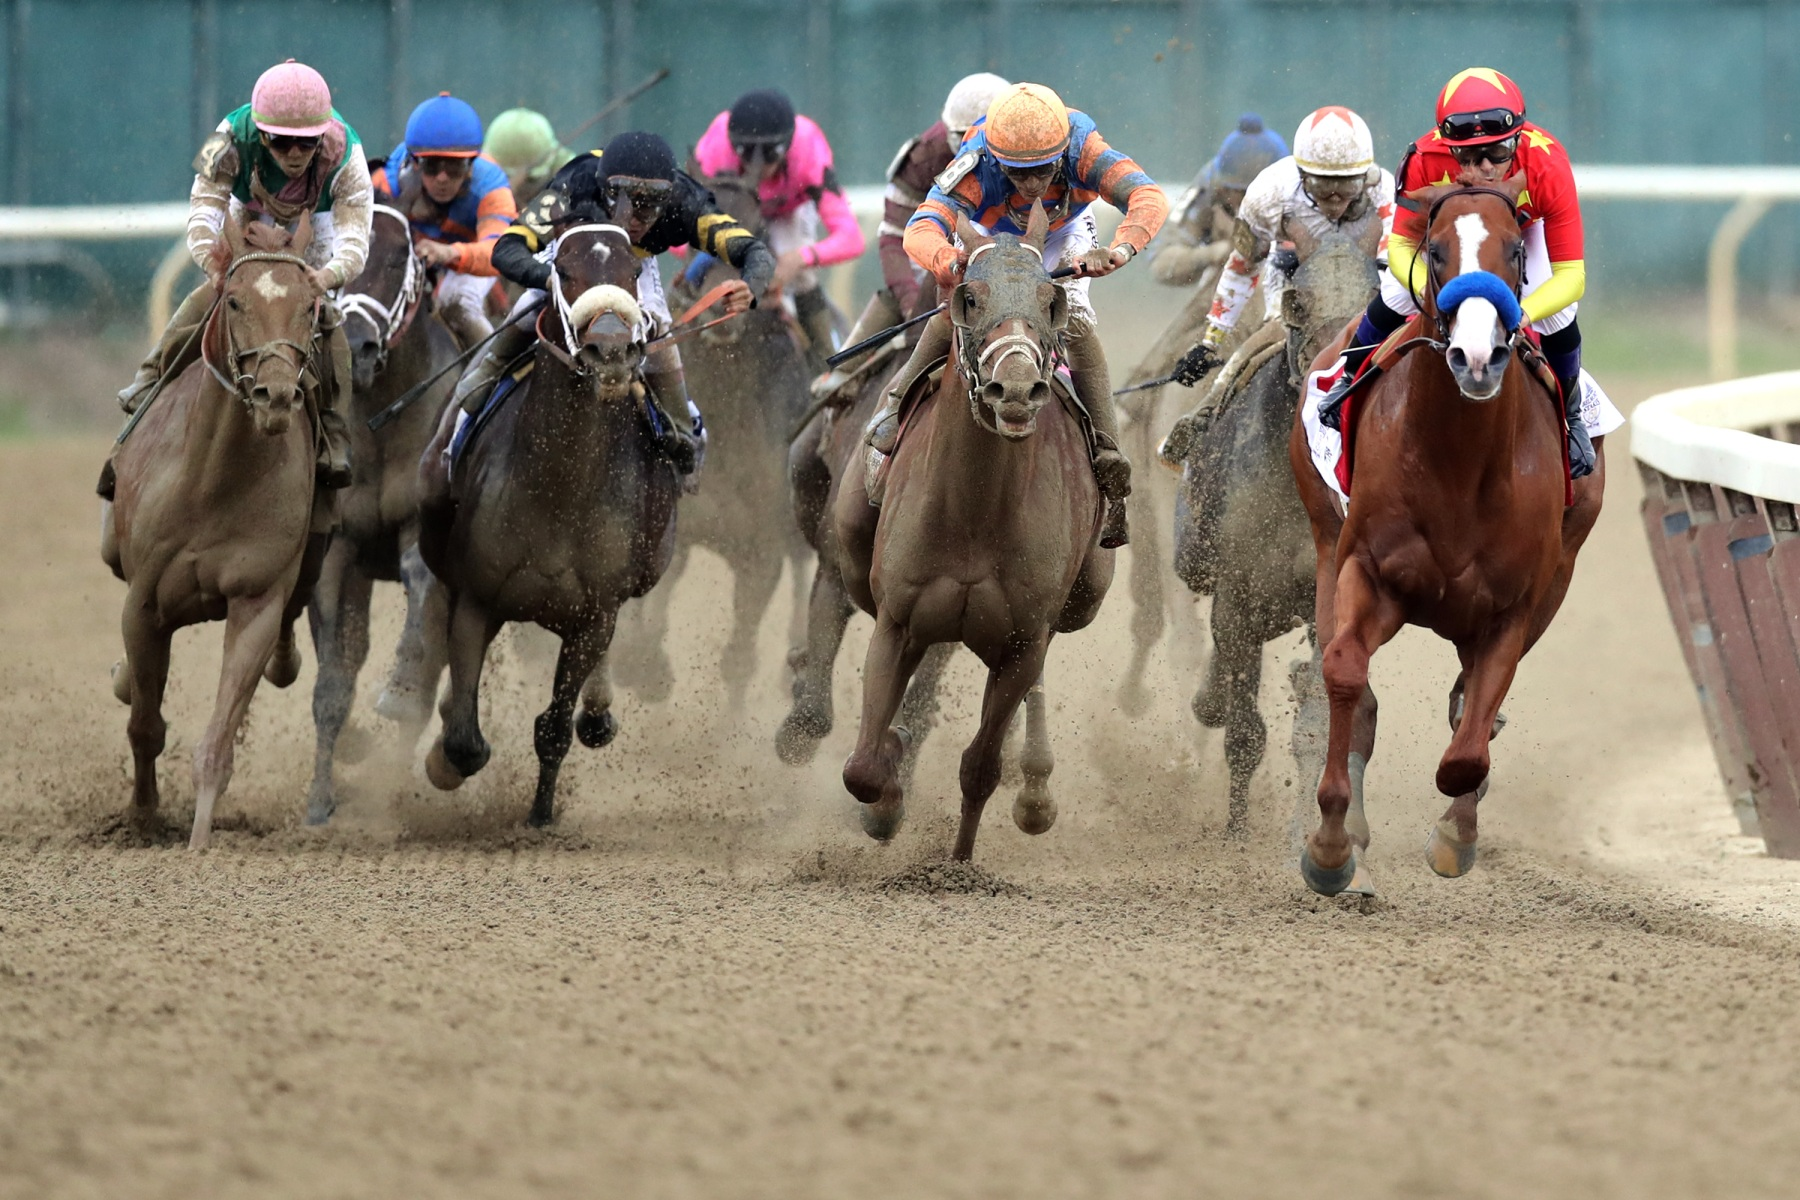 Justify #1, ridden by jockey Mike Smith leads the field around the 4th turn during the 150th running of the Belmont Stakes at Belmont Park on June 9, 2018 in Elmont, New York. Justify becomes the thirteenth Triple Crown winner and the first since American Pharoah in 2015.  (Photo by Jim McIsaac/Getty Images)